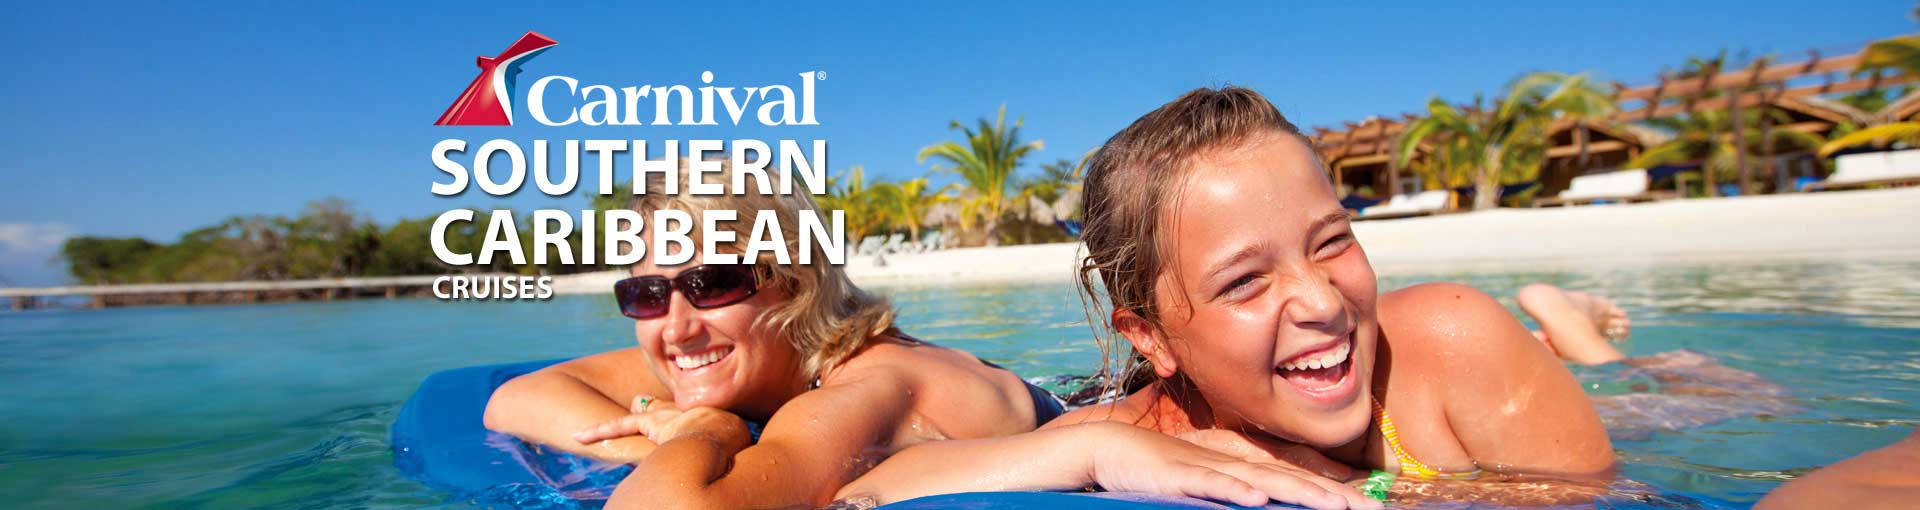 Carnival Cruise Lines Southern Caribbean Cruises